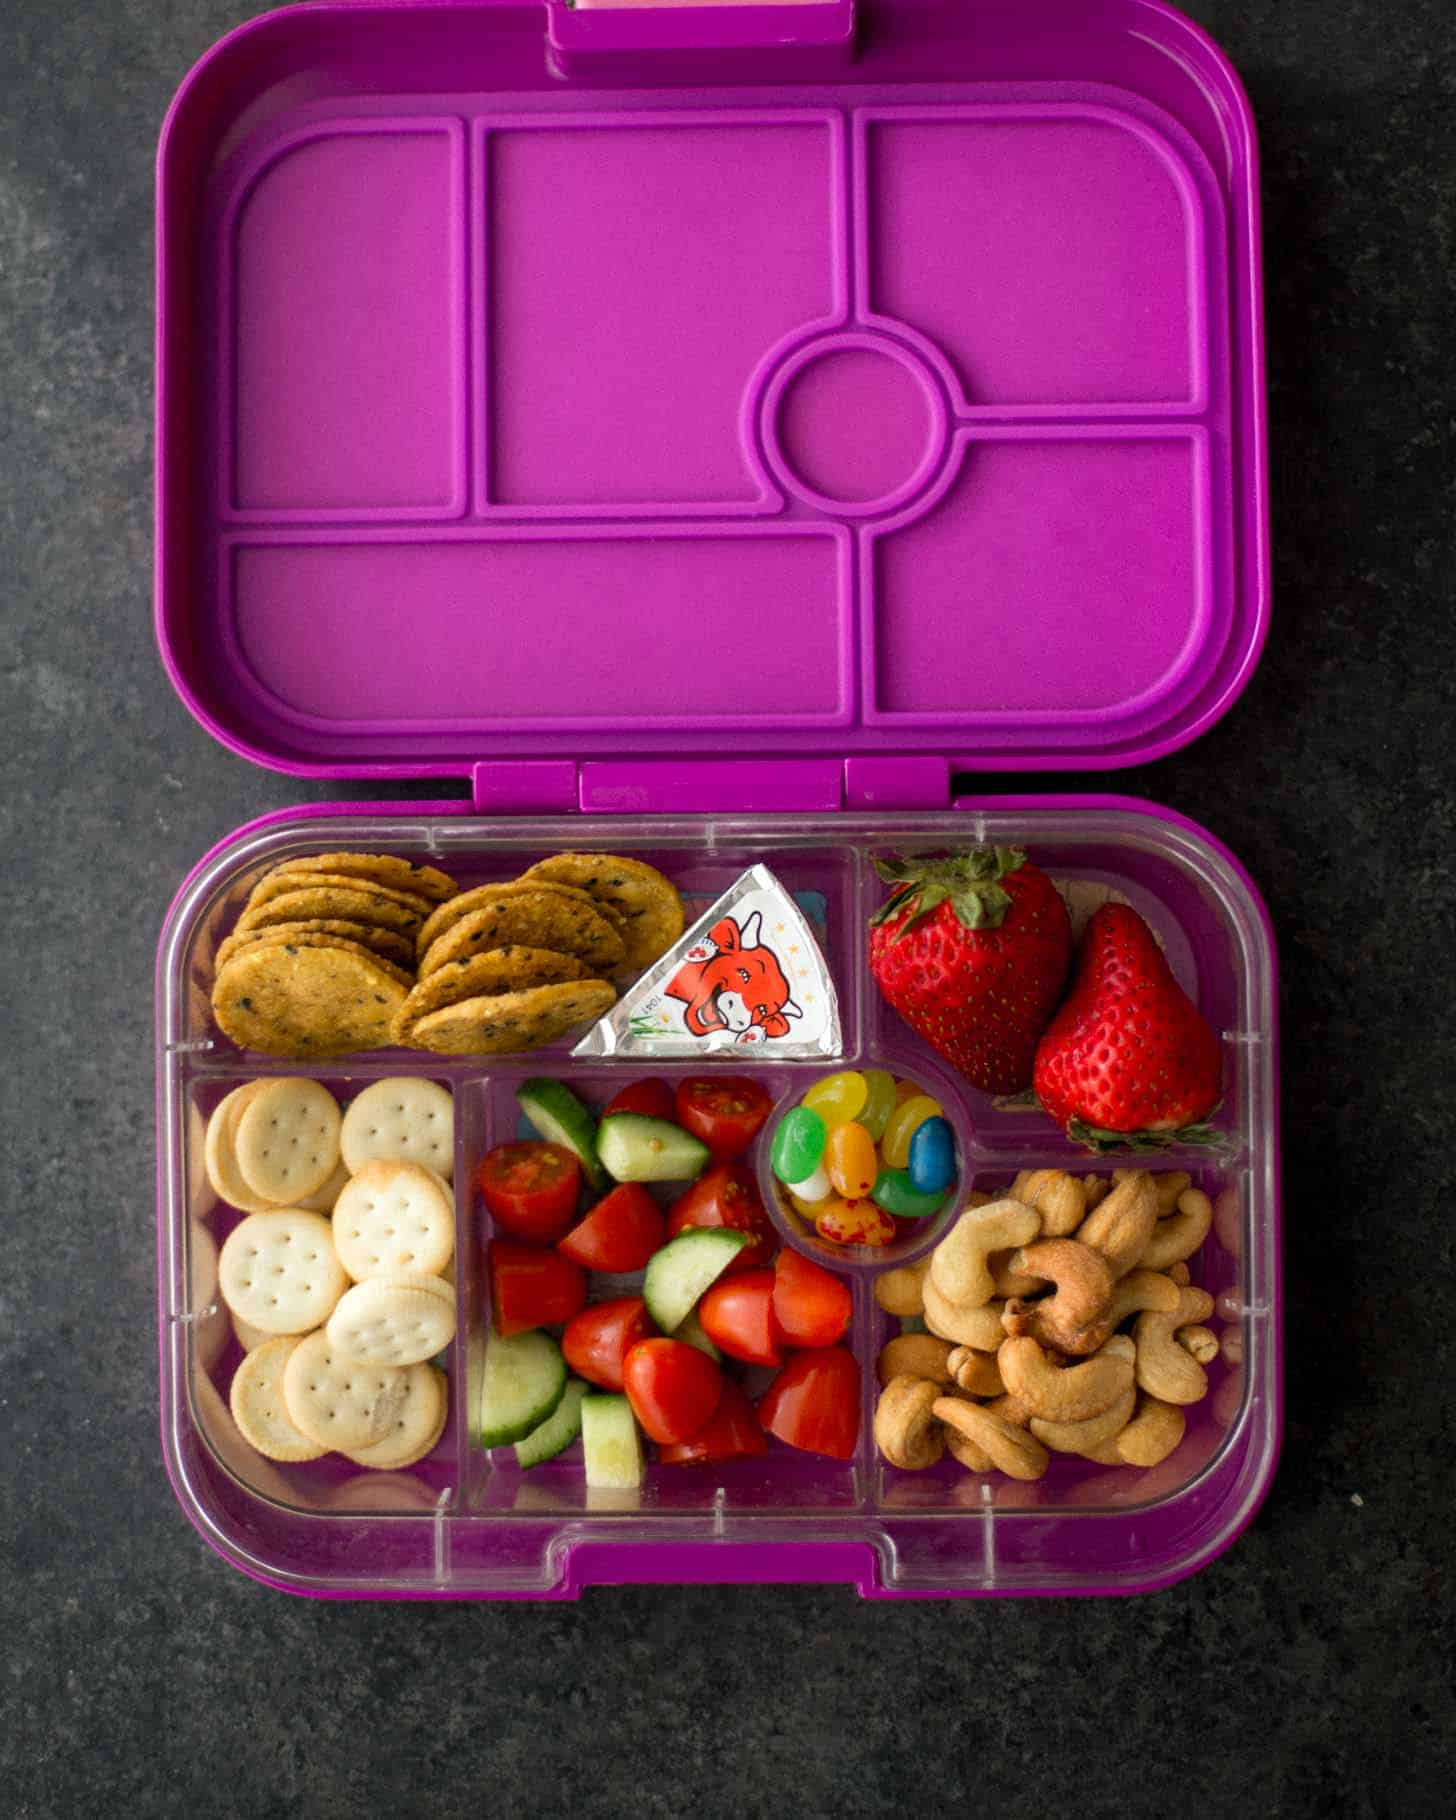 Yumbox Classic packed with Bento lunch